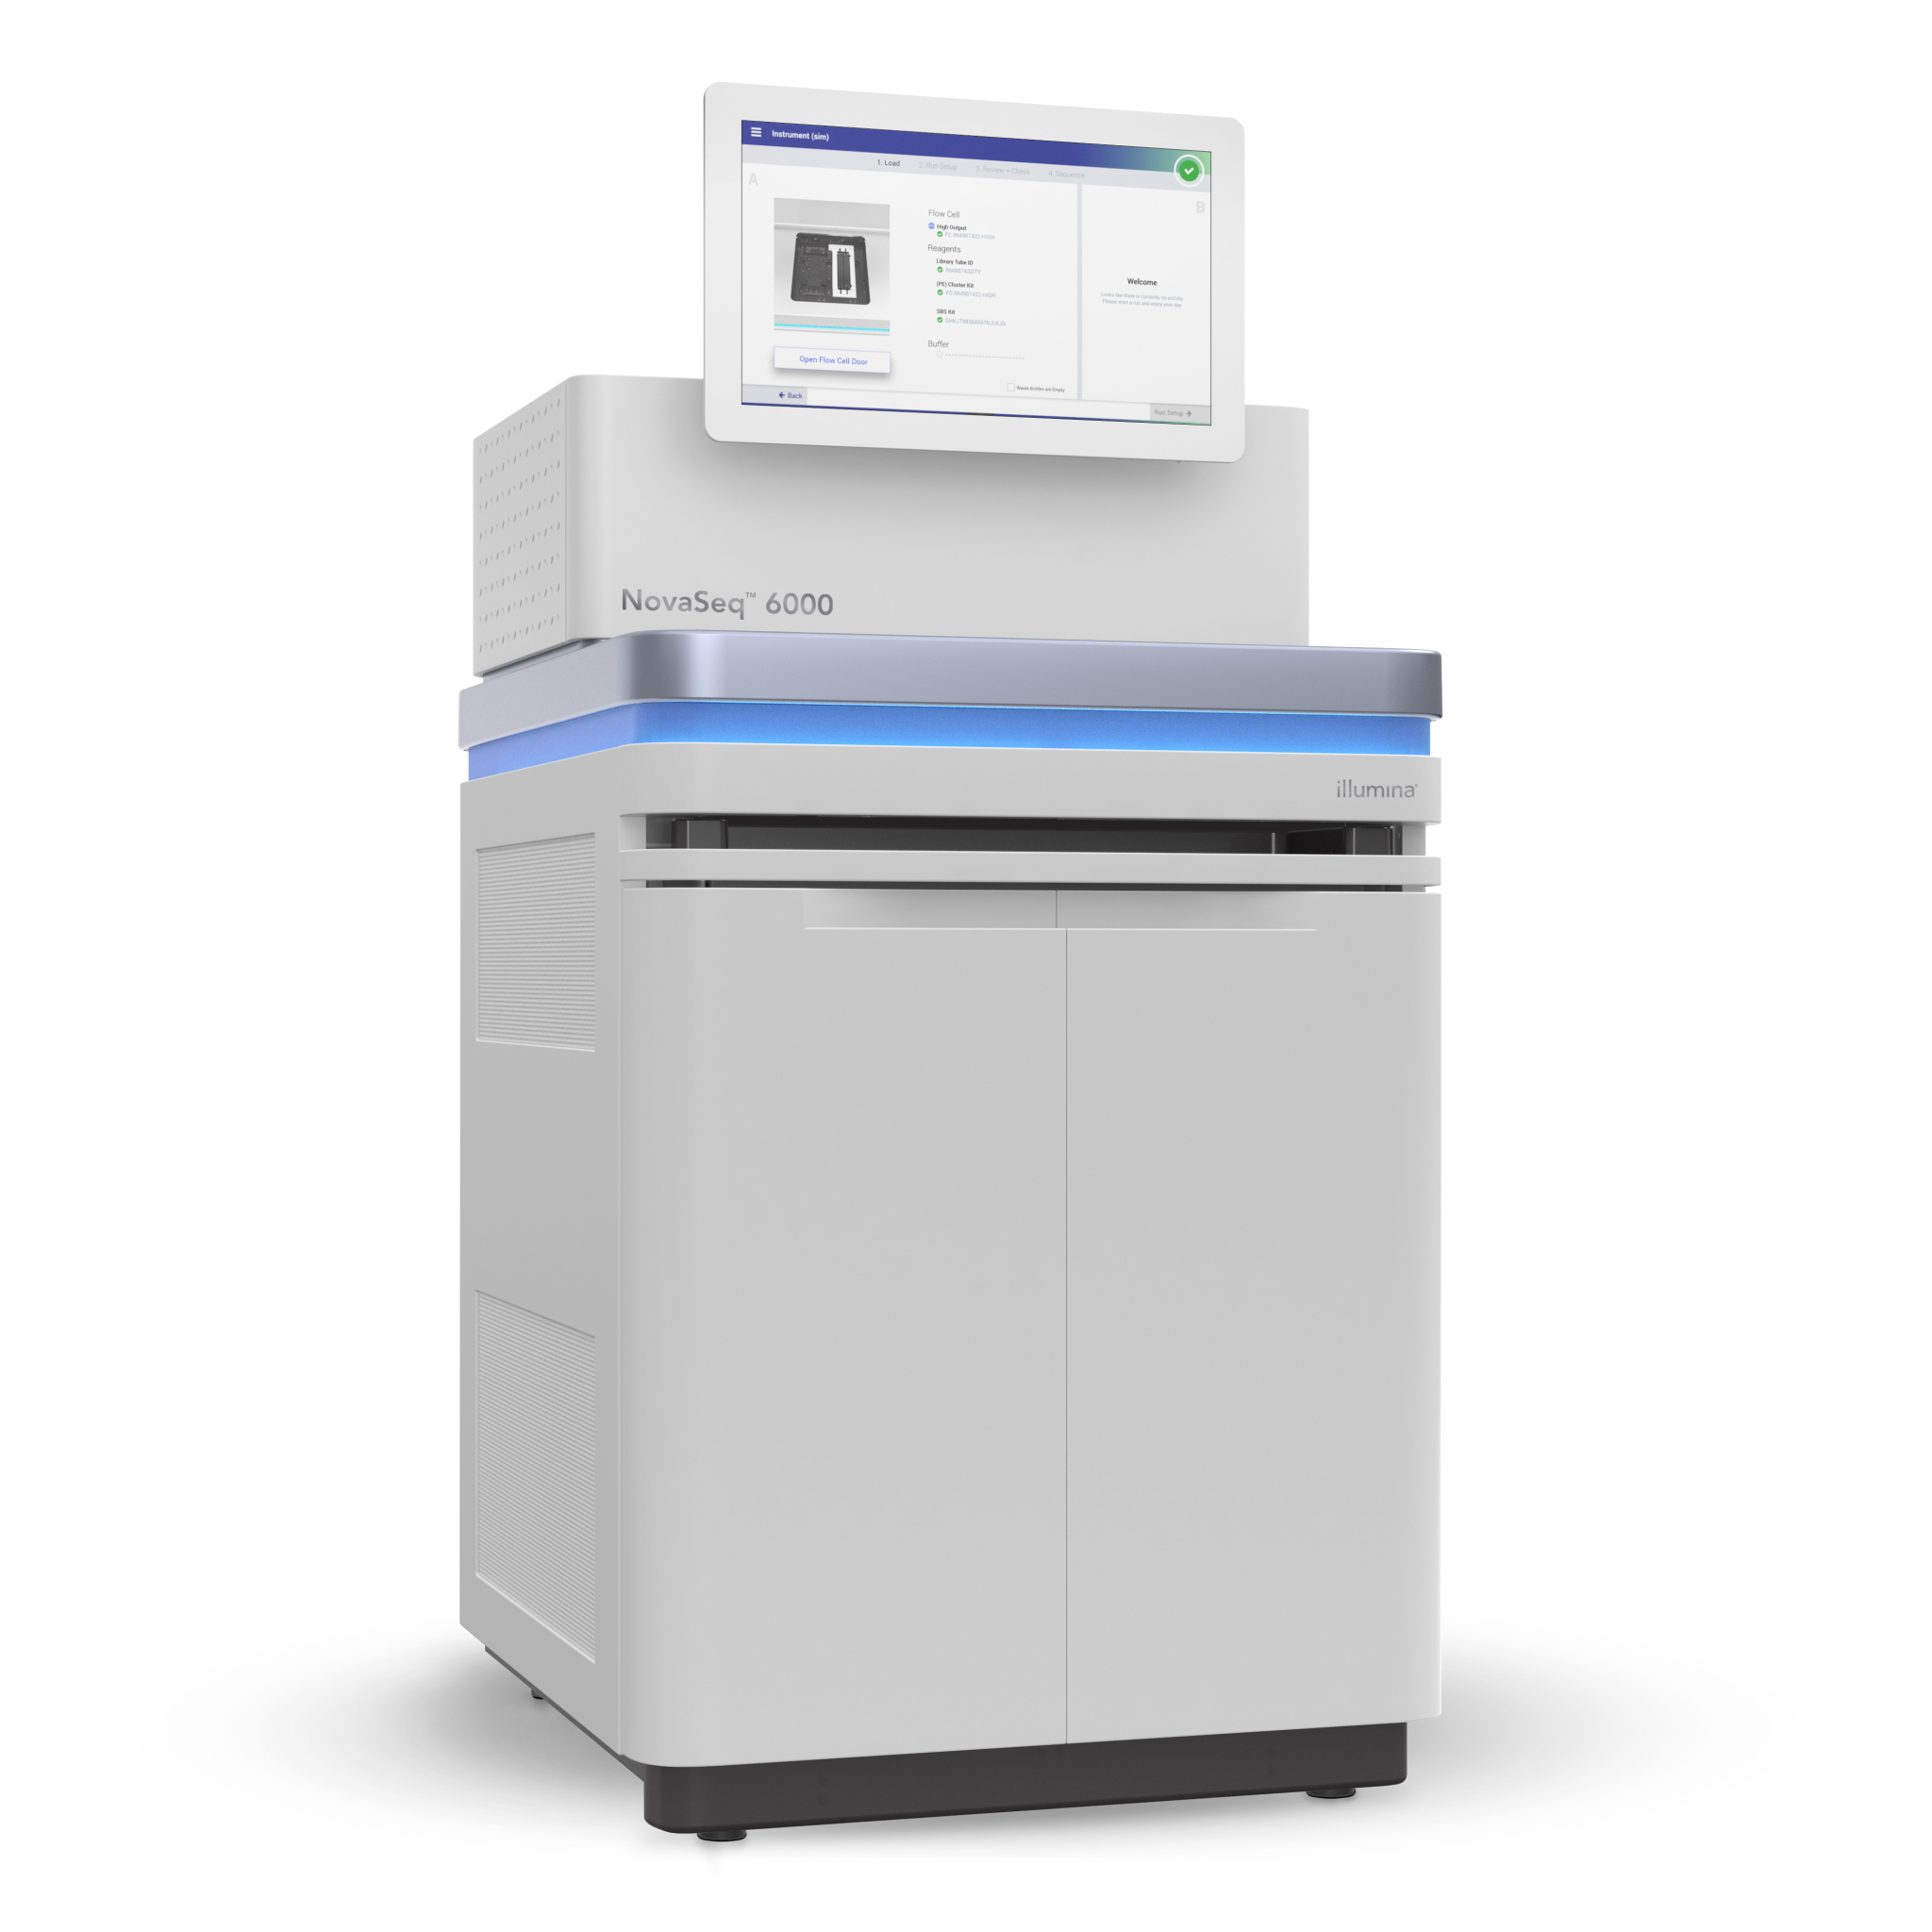 Illumina Introduces the NovaSeq Series—a New Architecture ...